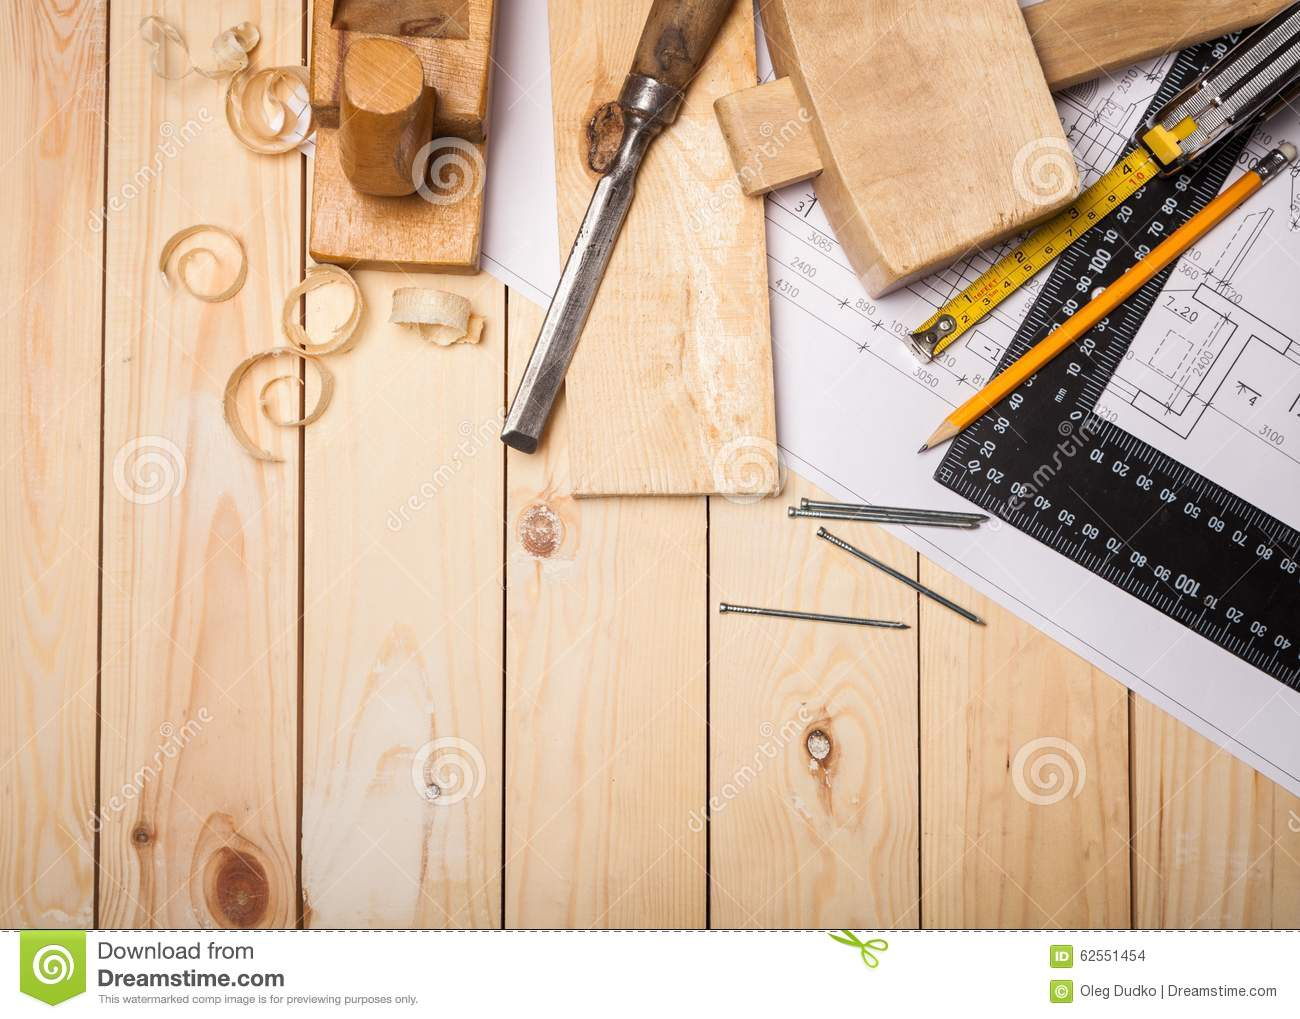 Carpentry stock photo image of copy industry home 62551454 download carpentry stock photo image of copy industry home 62551454 malvernweather Images